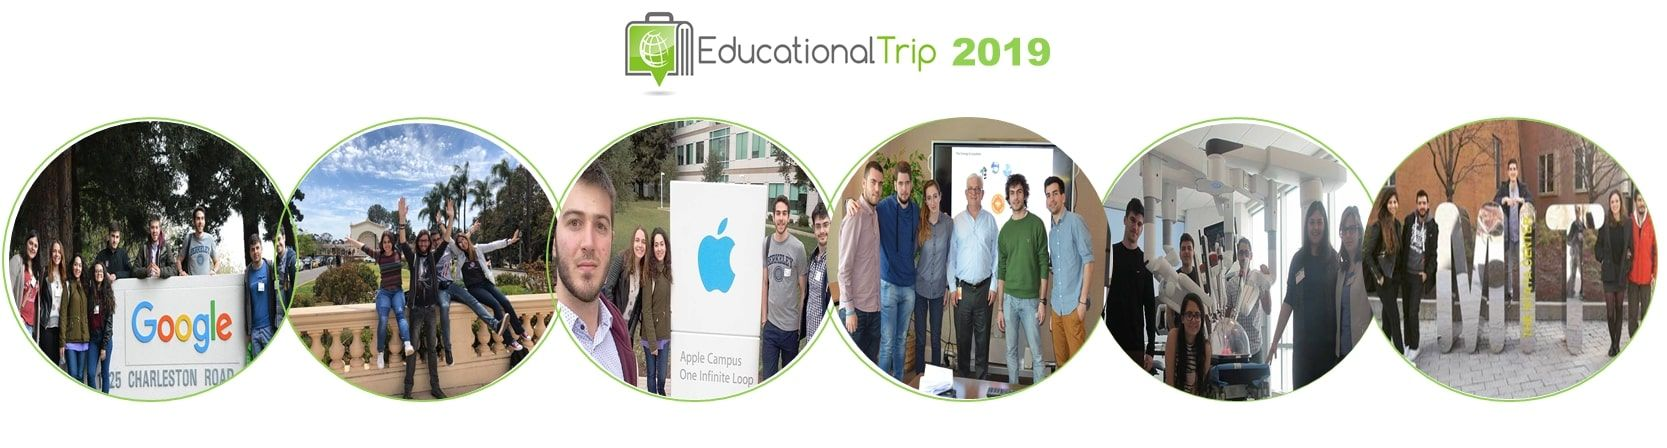 educational trip 2019 greece